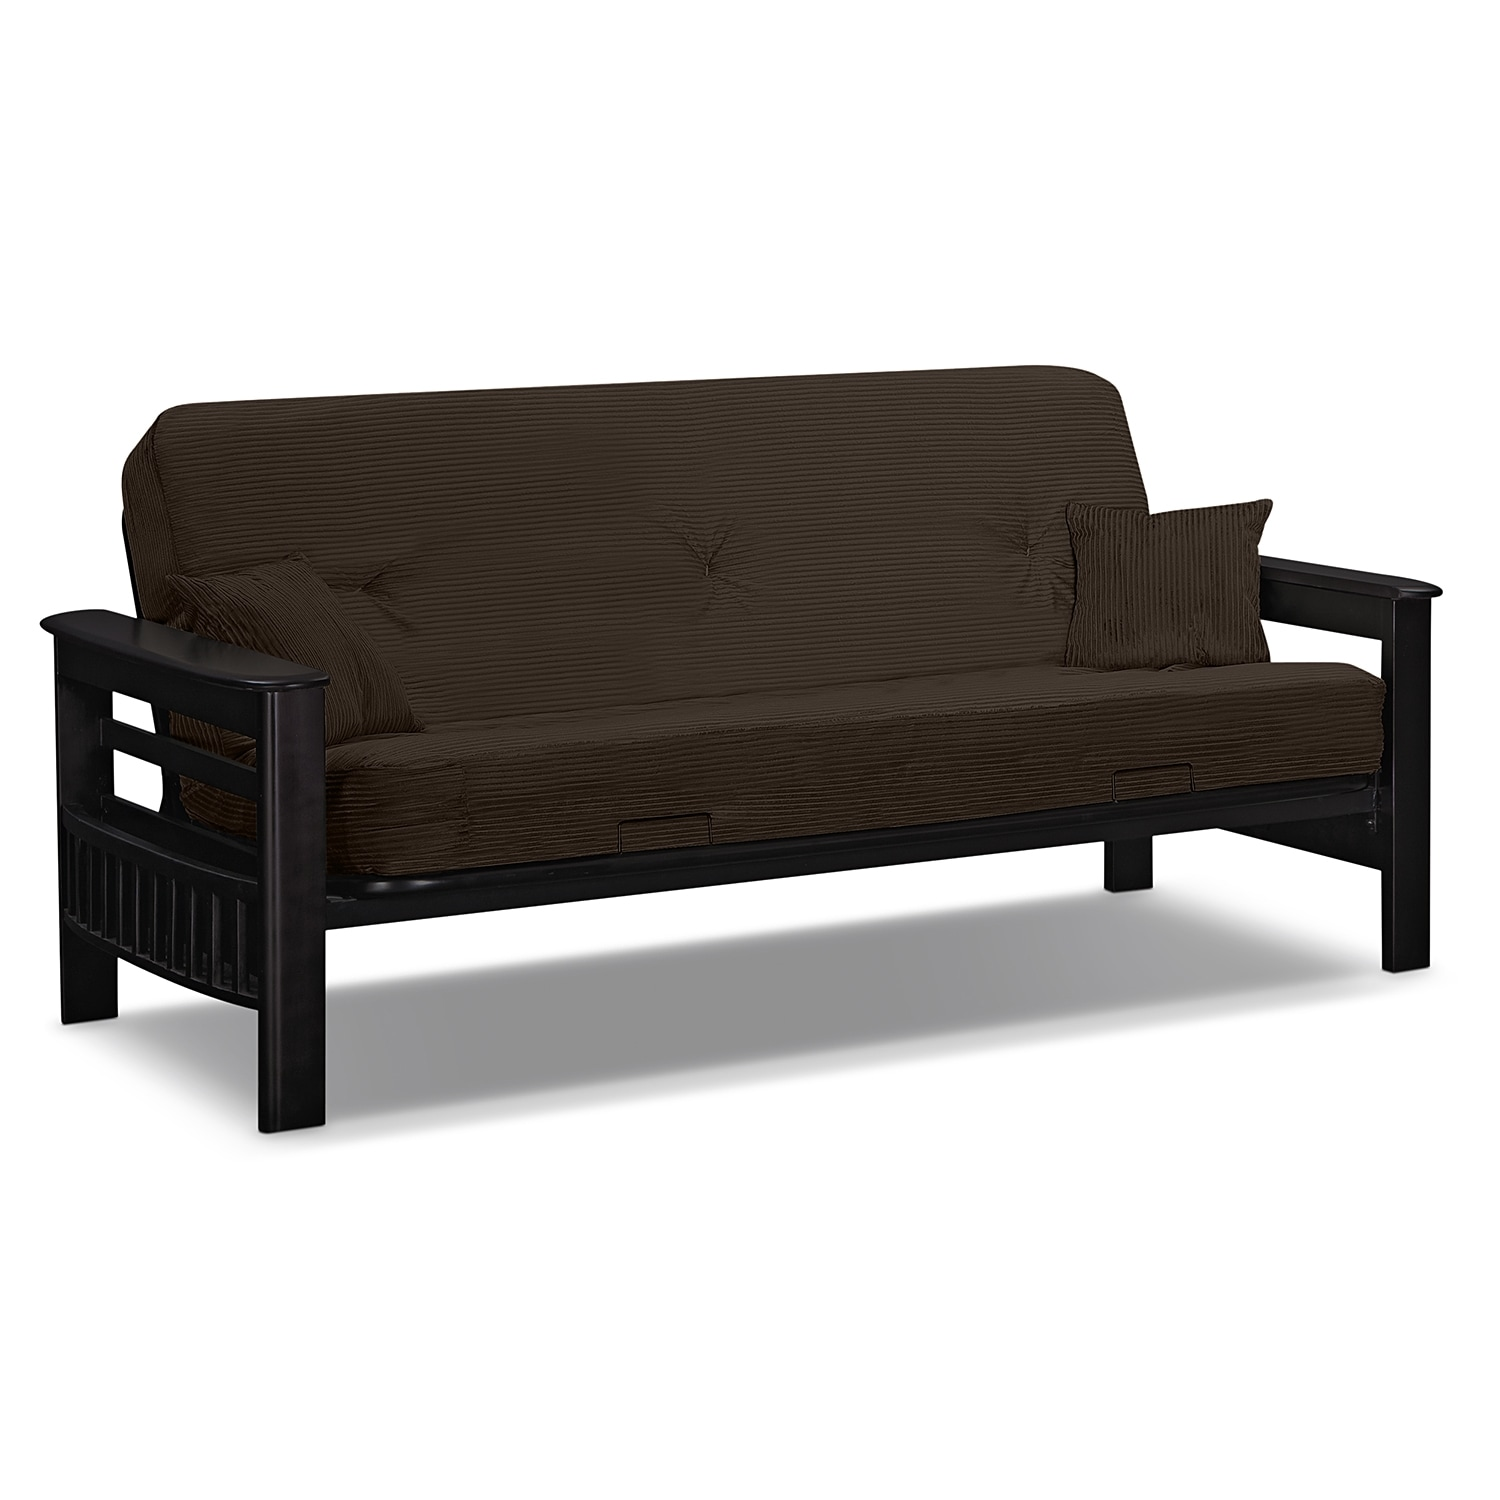 futon sets under 200 roselawnlutheran. Black Bedroom Furniture Sets. Home Design Ideas